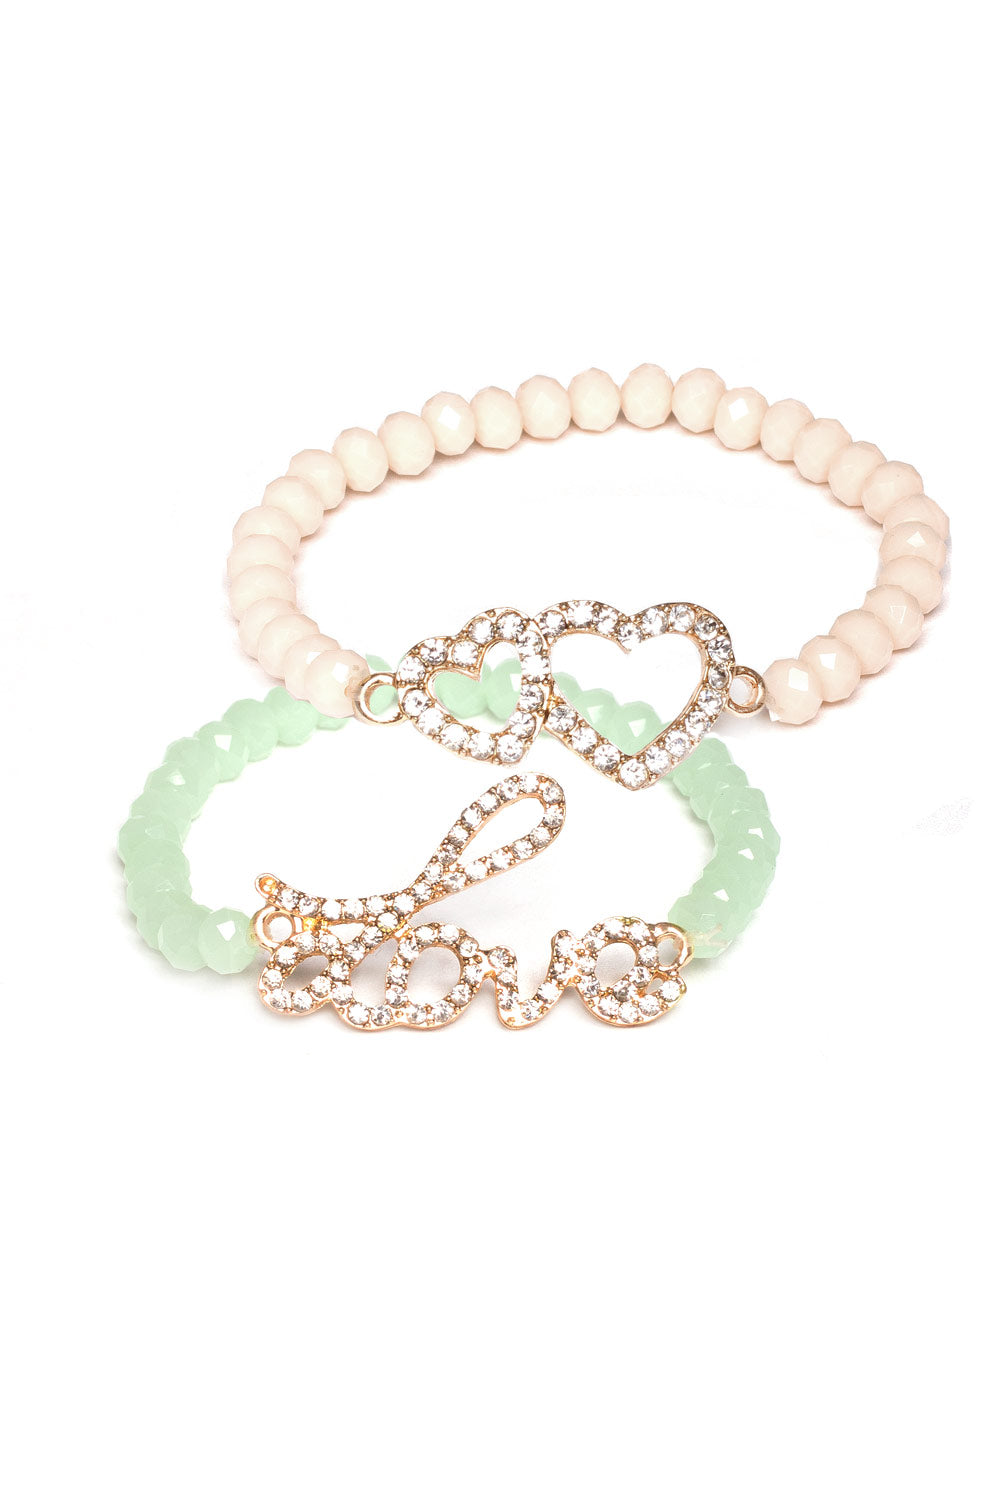 Type 1 Amour the Merrier Bracelet Set